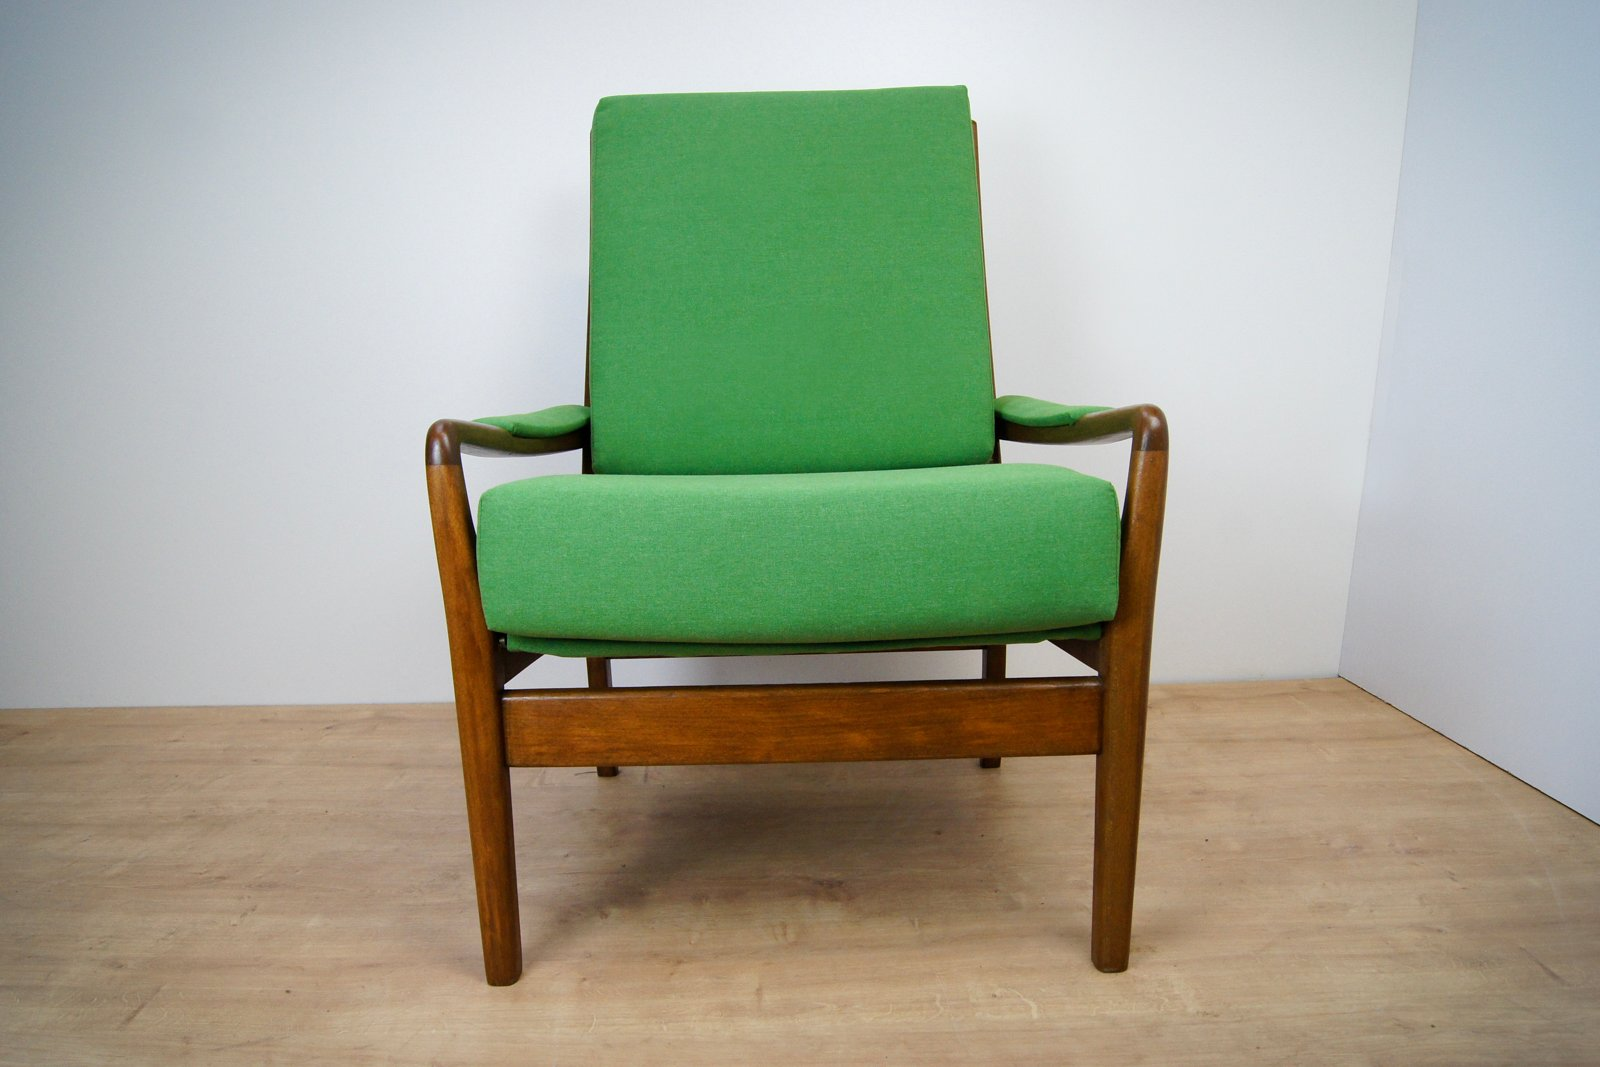 High Quality Vintage Green Armchair From Parker Knoll, 1960s For Sale At Pamono